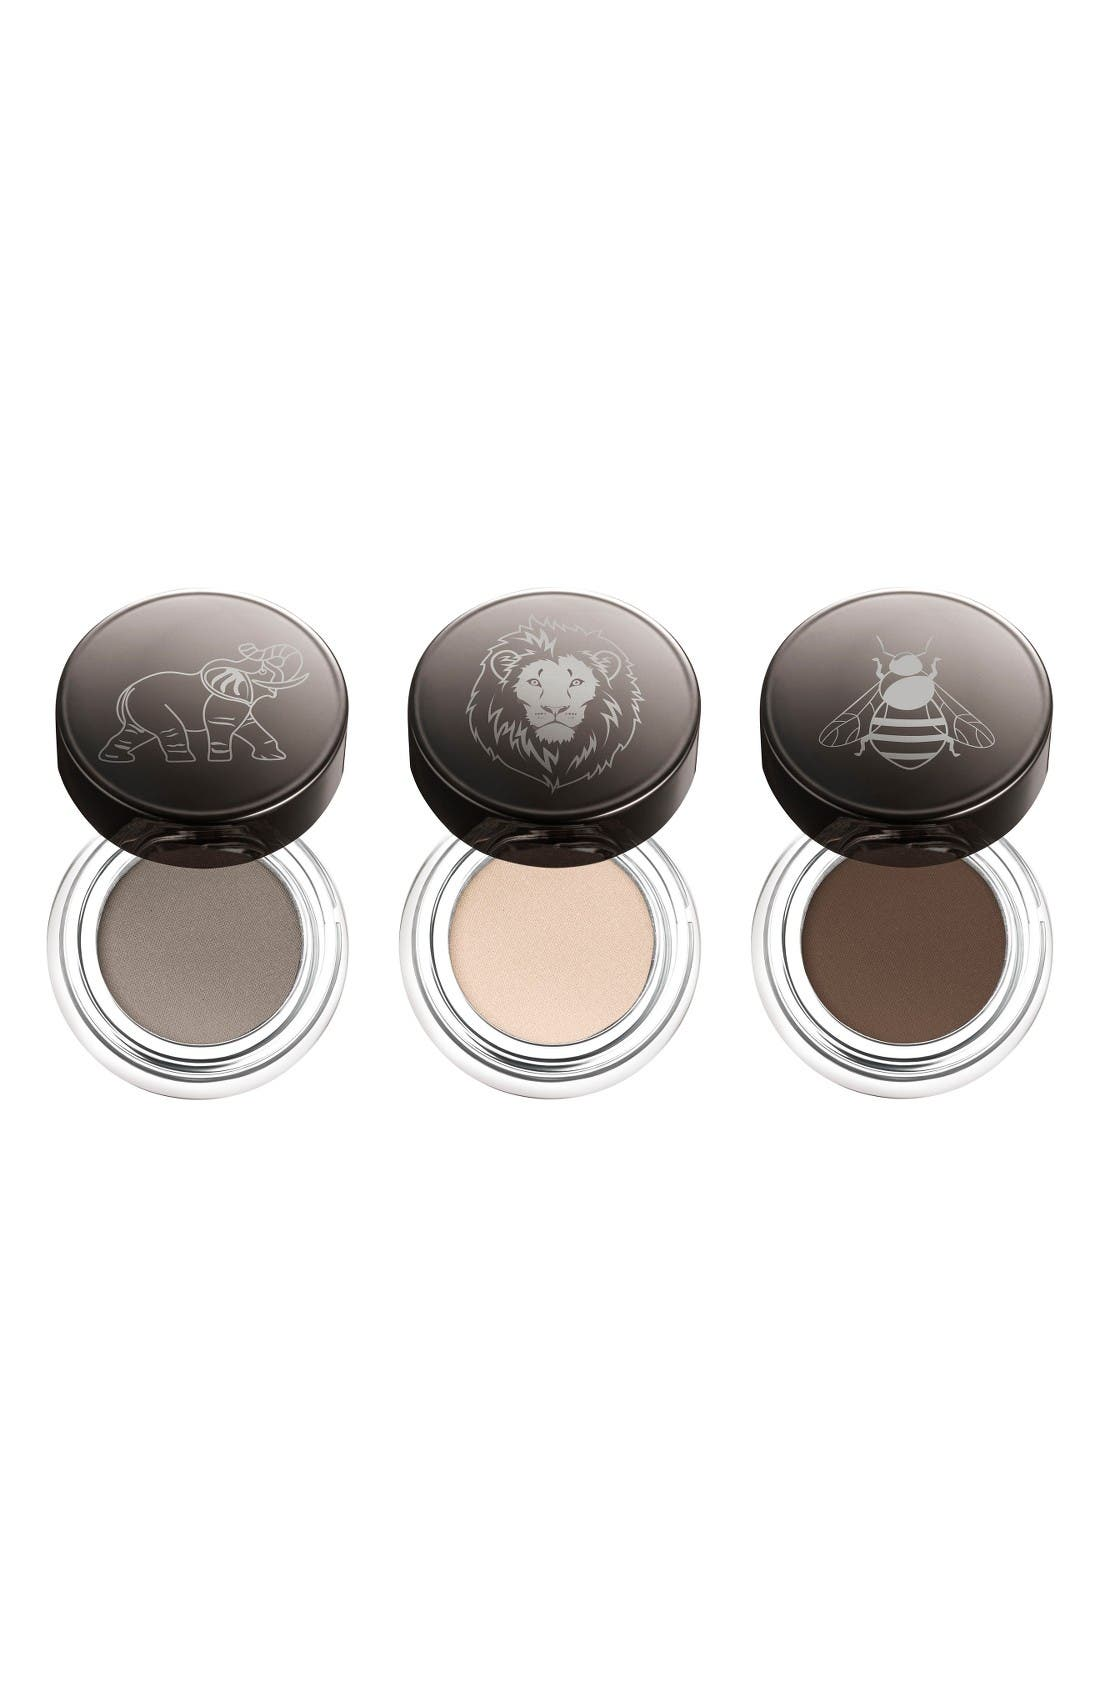 Alternate Image 1 Selected - Chantecaille 3 Mermaid Eye Matte Eyeshadow Trio (Limited Edition) ($102 Value)